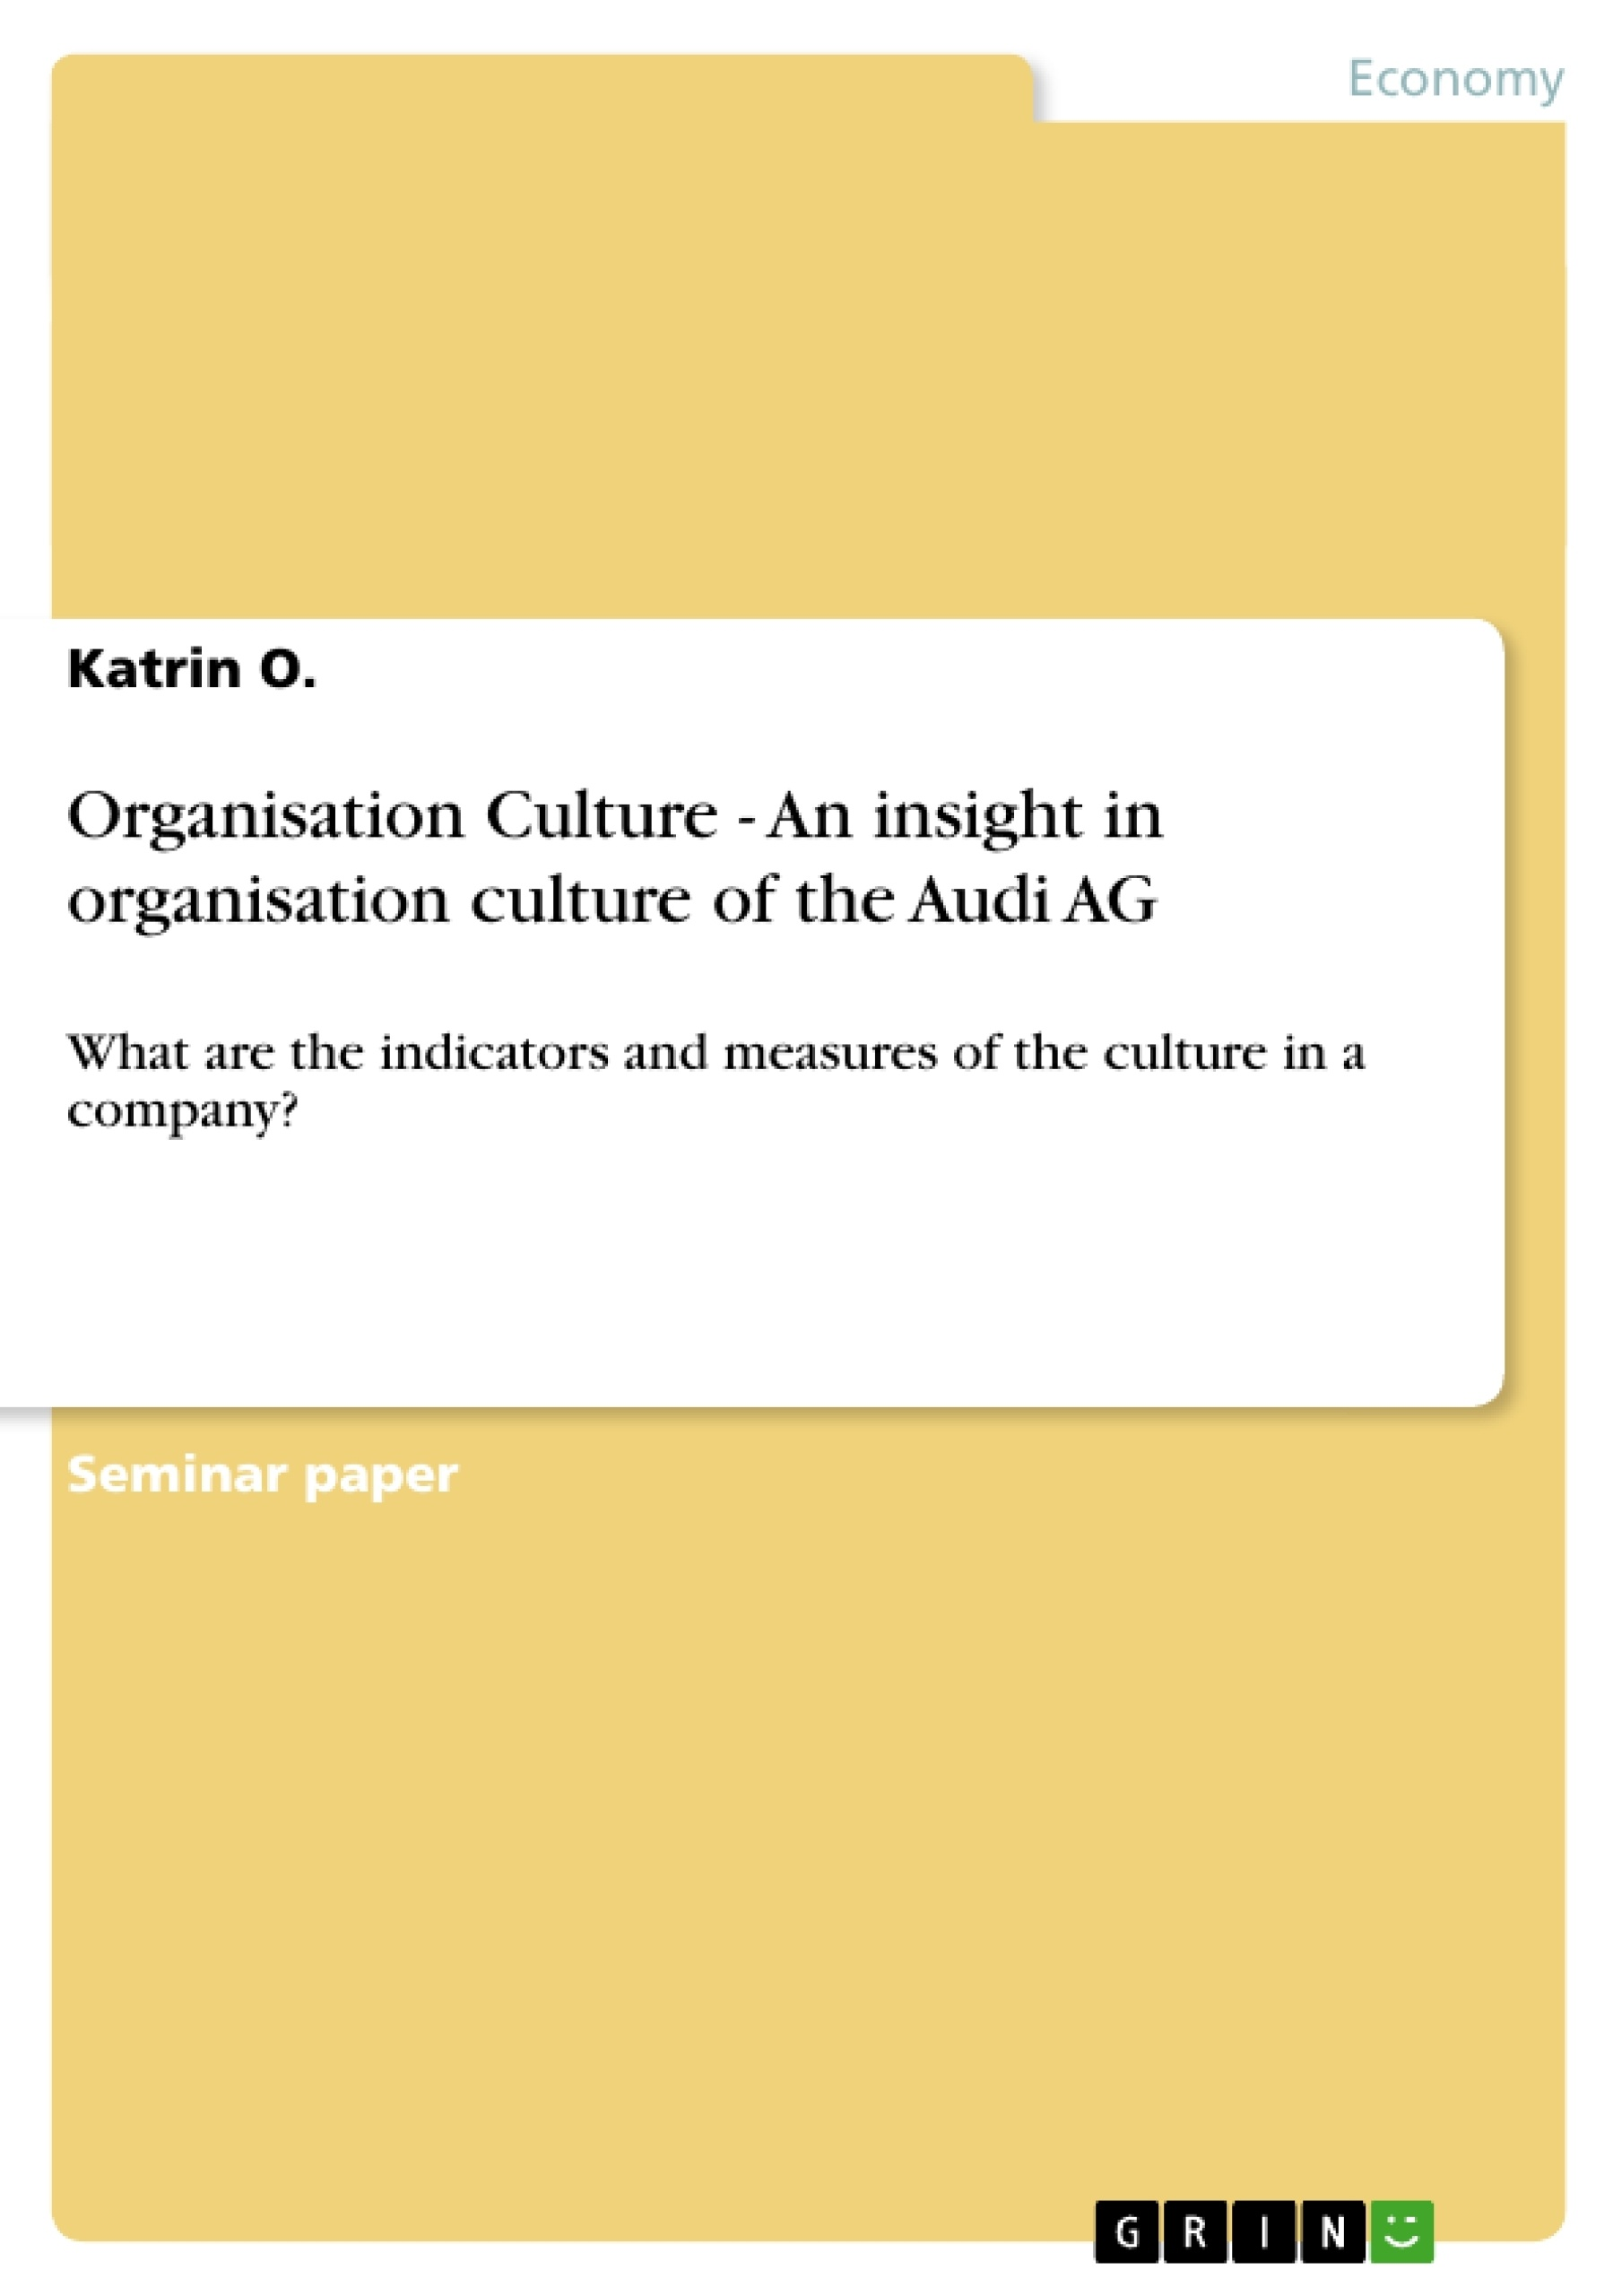 Title: Organisation Culture - An insight in organisation culture of the Audi AG